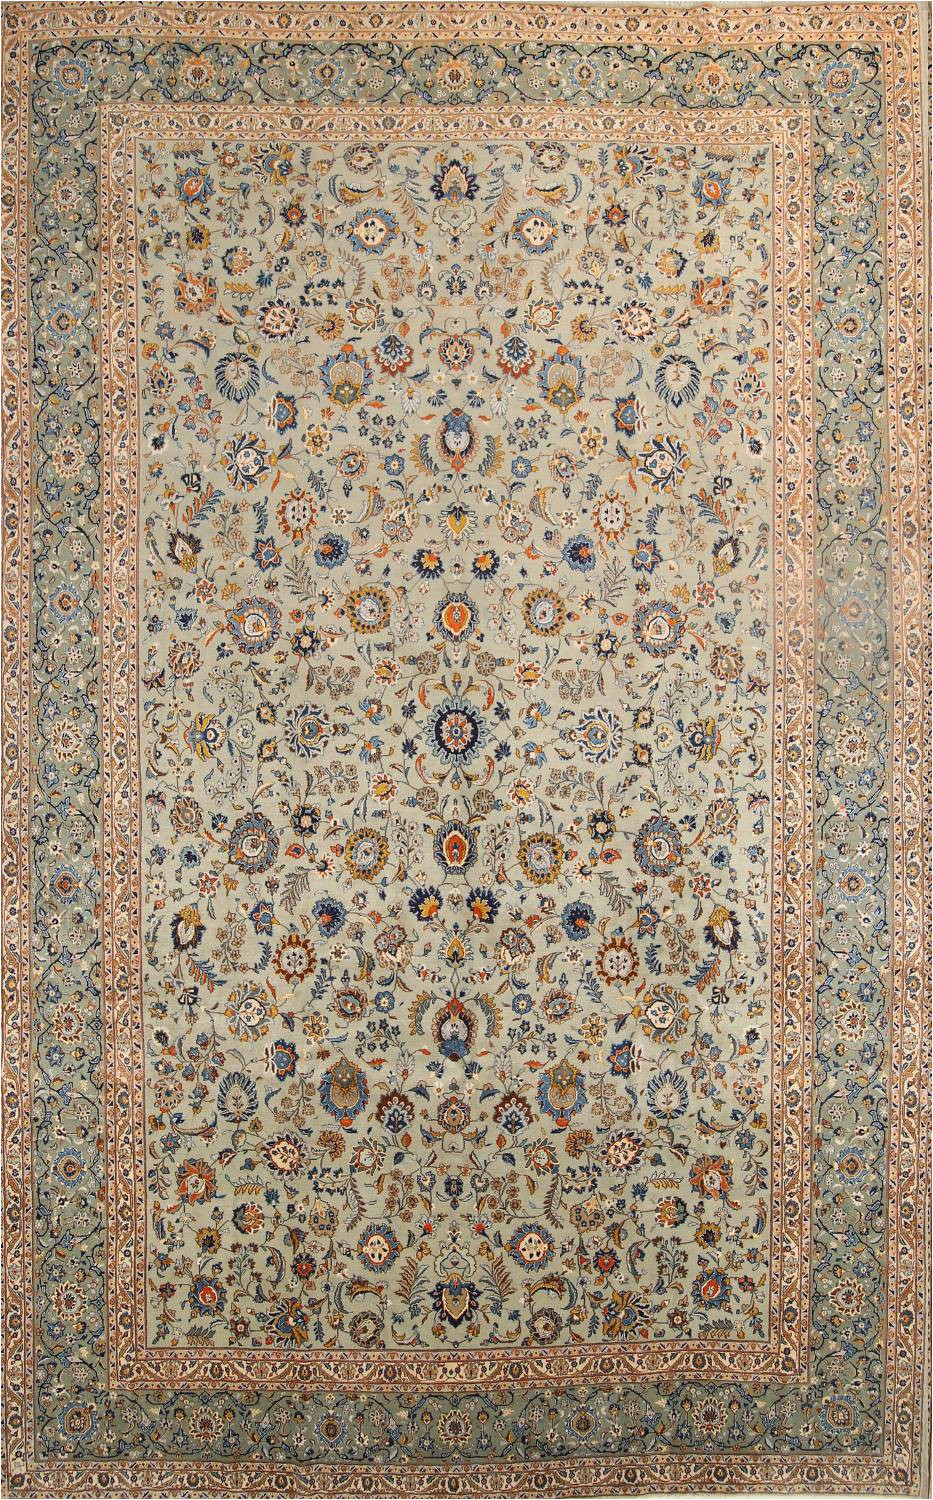 11 X 18 area Rug 11×18 Kashan Persian area Rug